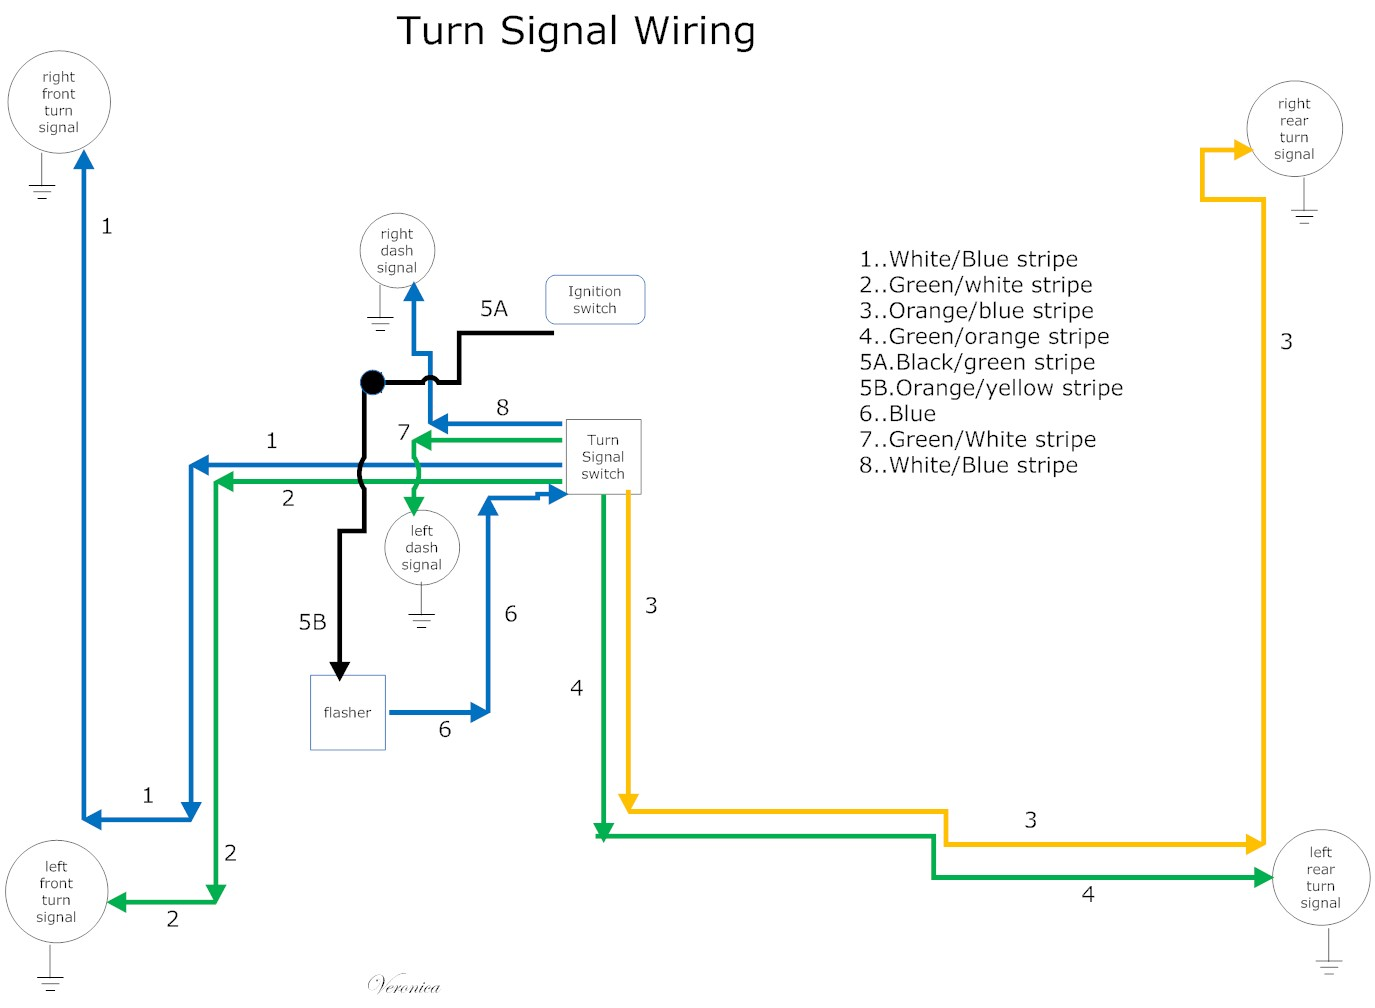 Turn+signal+Wiring the care and feeding of ponies 1965 1966 mustang turn signal turn signal wiring diagram at soozxer.org